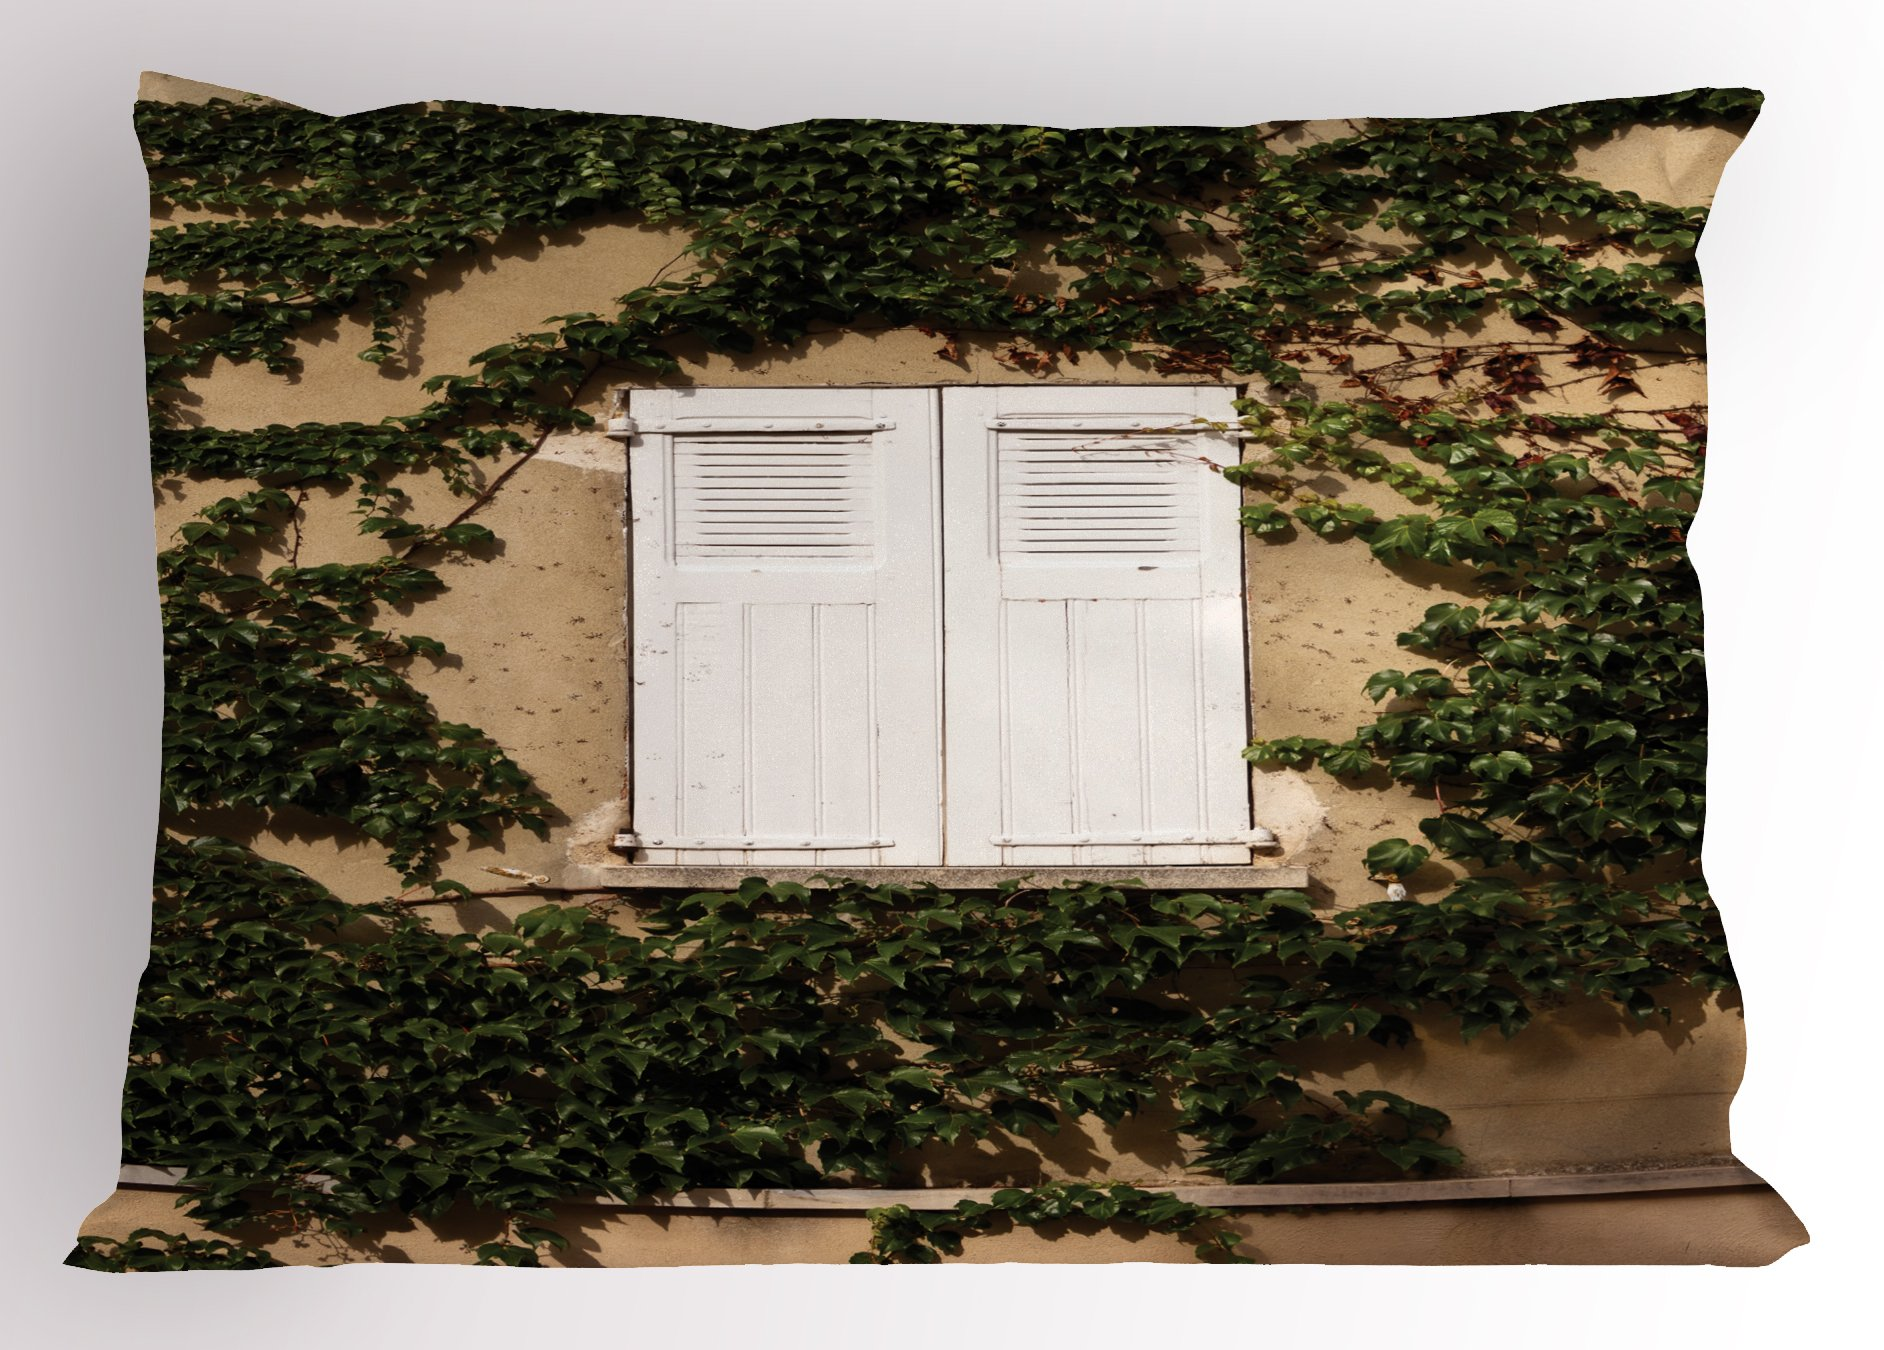 Lunarable Country Pillow Sham, Cultural Ancient Mediterranean Wood Window Shutter Ivy Plant Image Print, Decorative Standard Size Printed Pillowcase, 26 X 20 inches, Ecru White Green by Lunarable (Image #1)